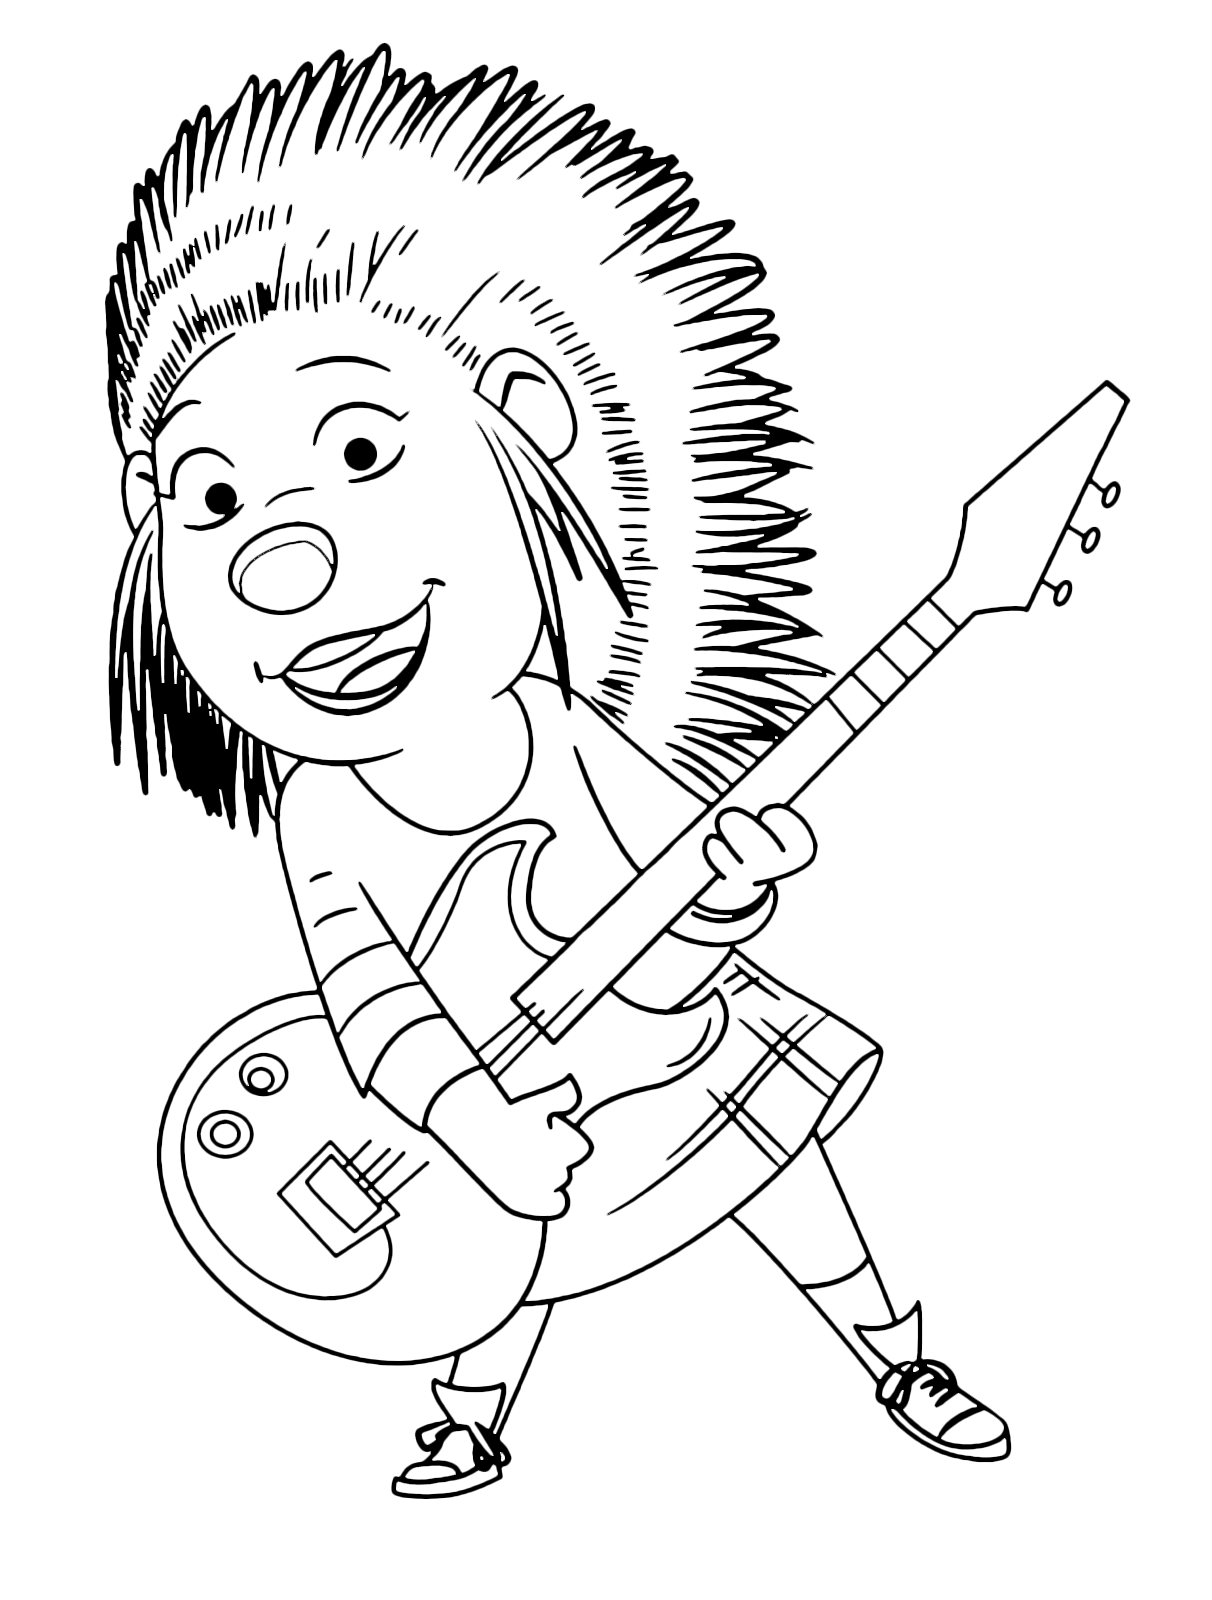 Porcupine Coloring Pages Best Coloring Pages For Kids Unicorn Coloring Pages Coloring Pages Animal Coloring Pages